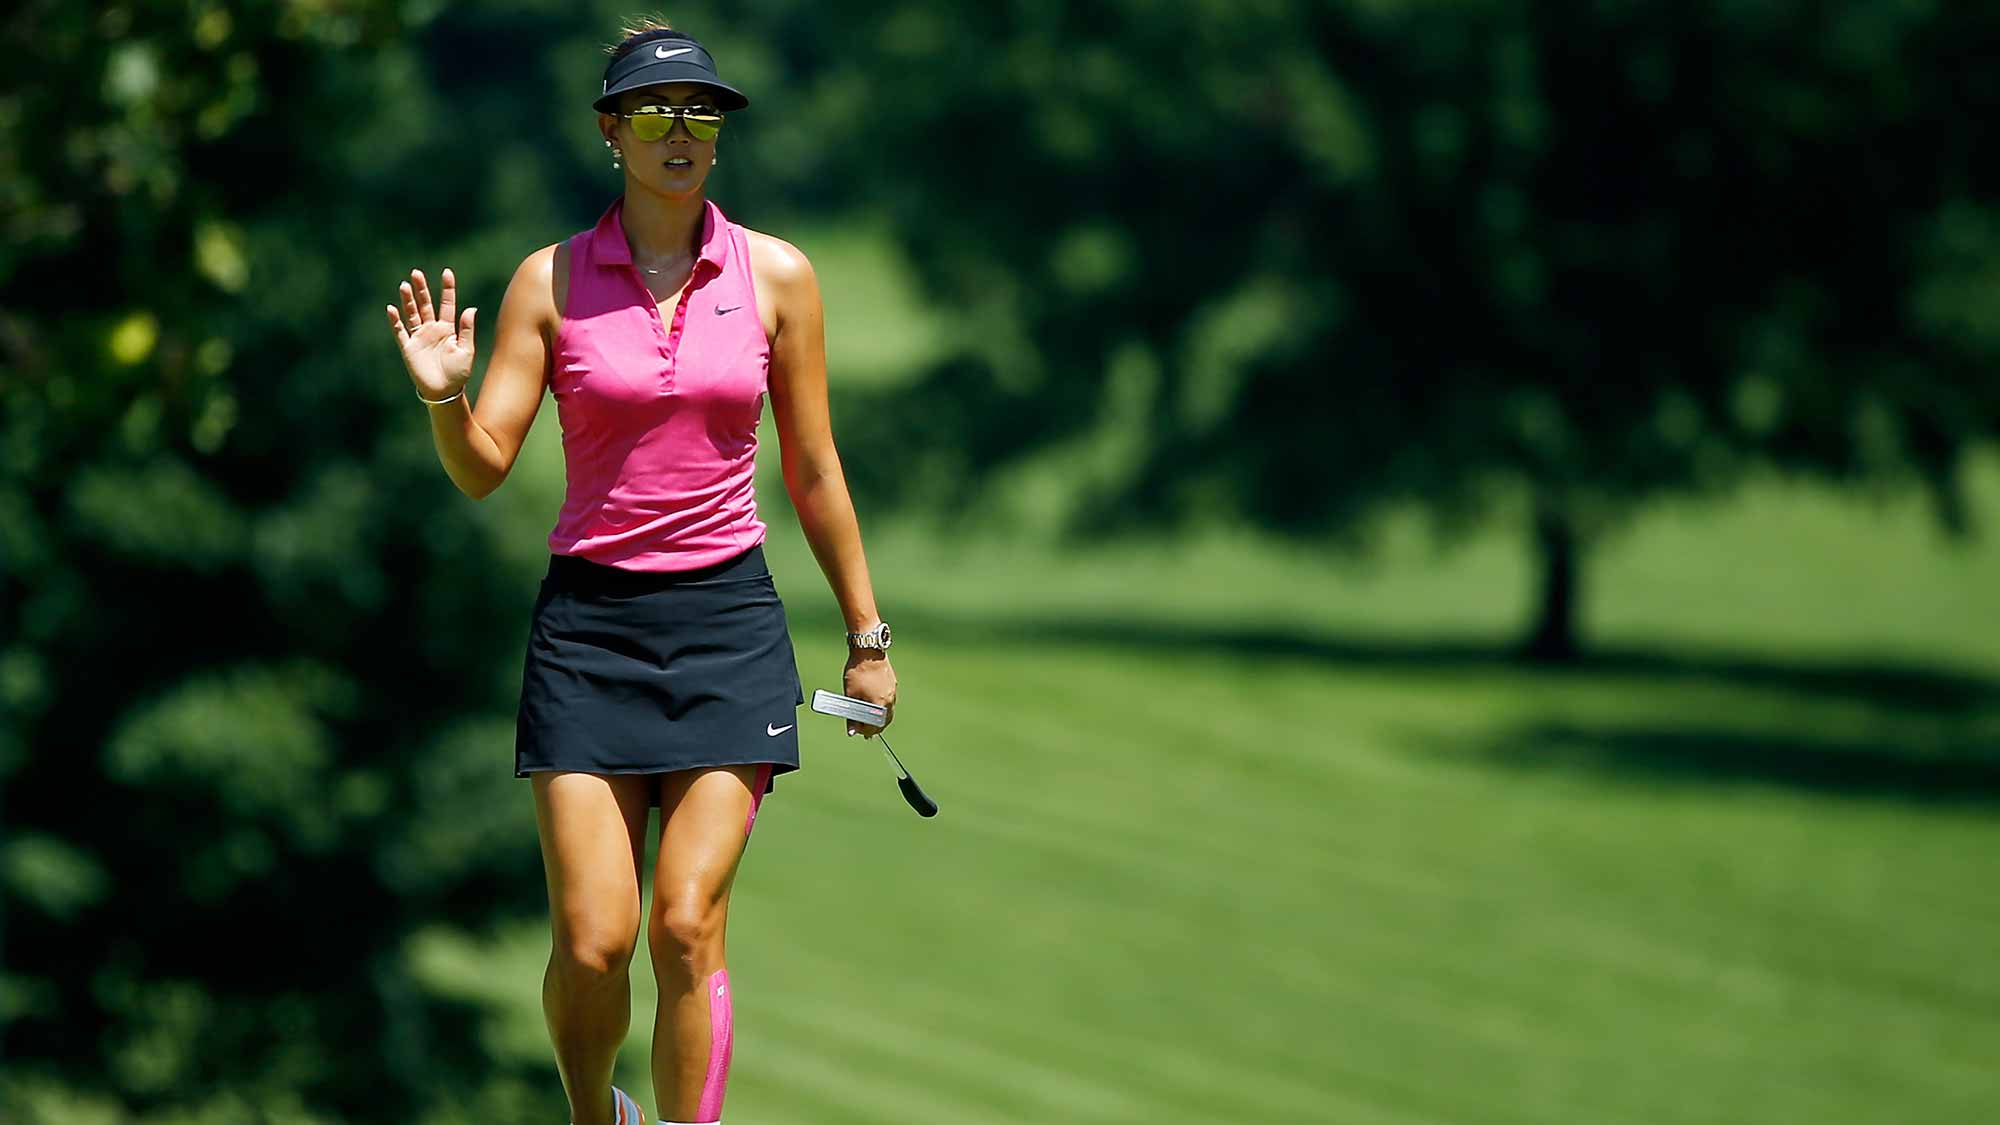 Would The Attire Of LPGA Tour Players Be Welcomed Where You Work/Play?